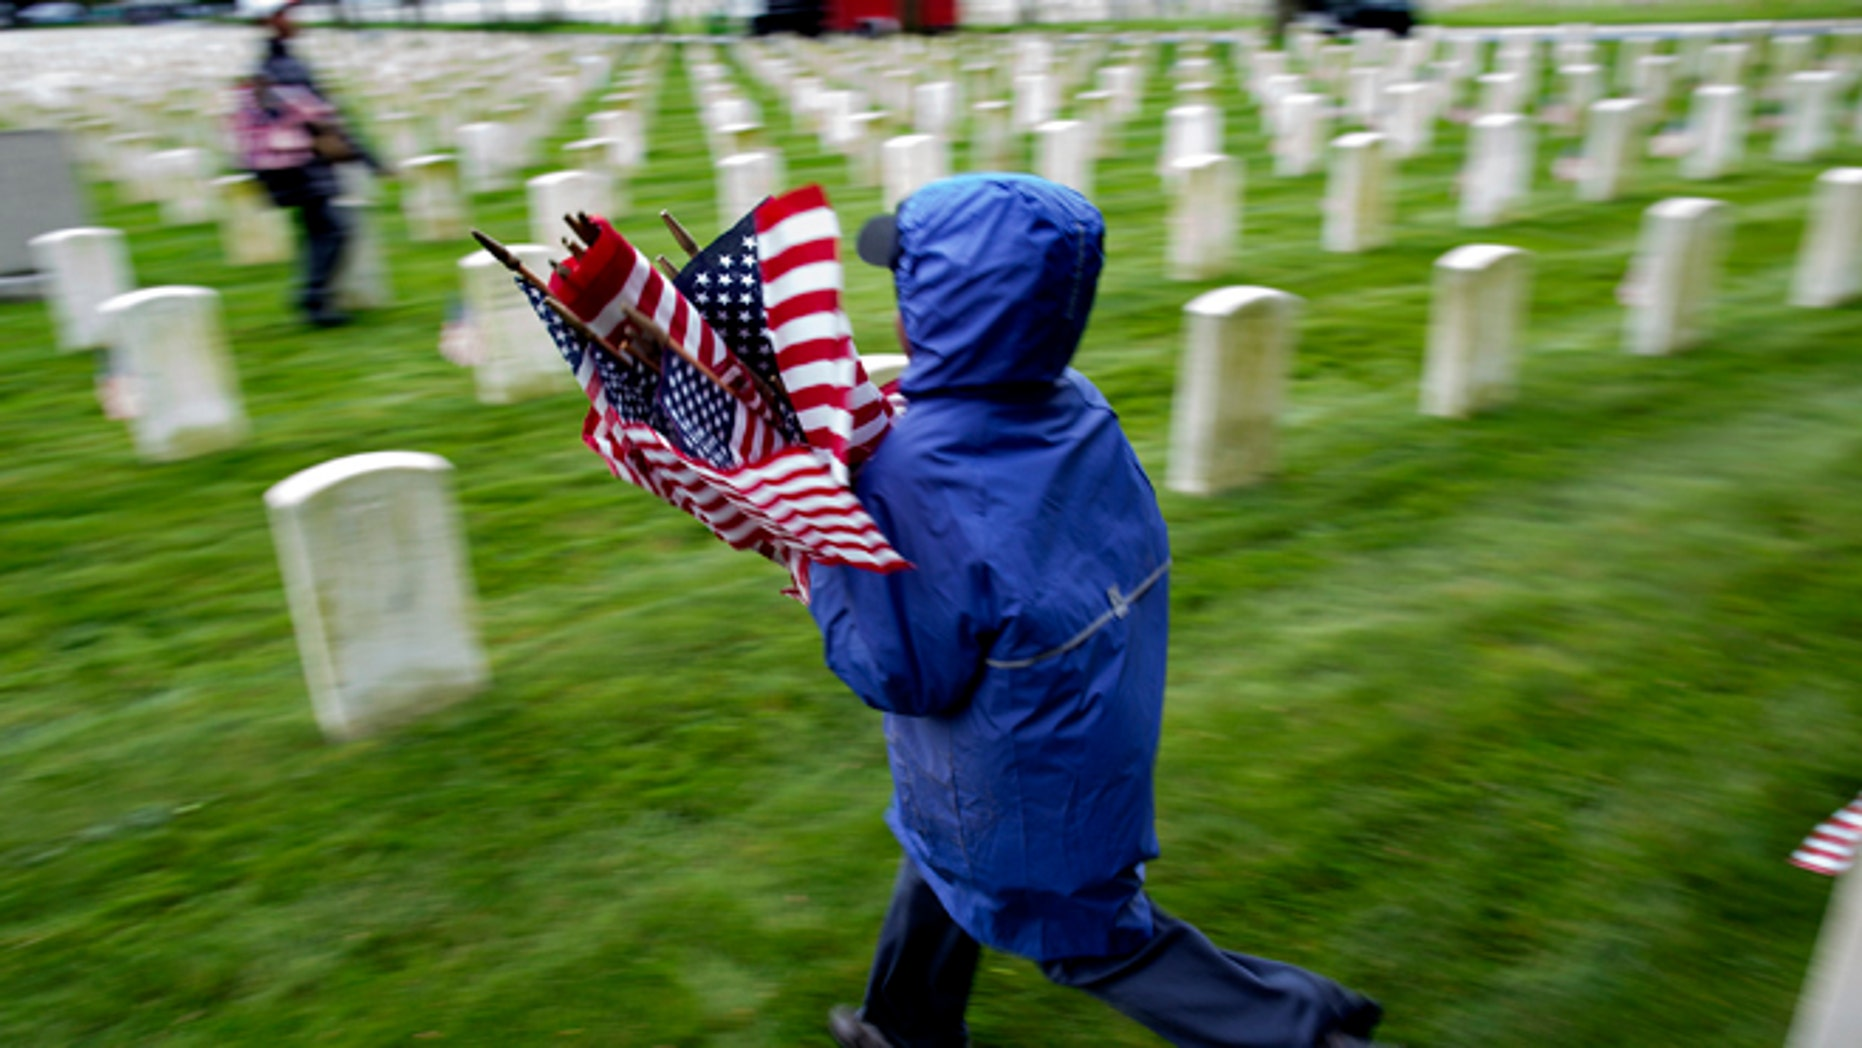 Jabari Nedd, 9, of New York, eagerly carries American Flags he and other volunteers were placing on graves at Cypress Hills National Cemetery in the Brooklyn borough of New York, Saturday, May 25, 2013.